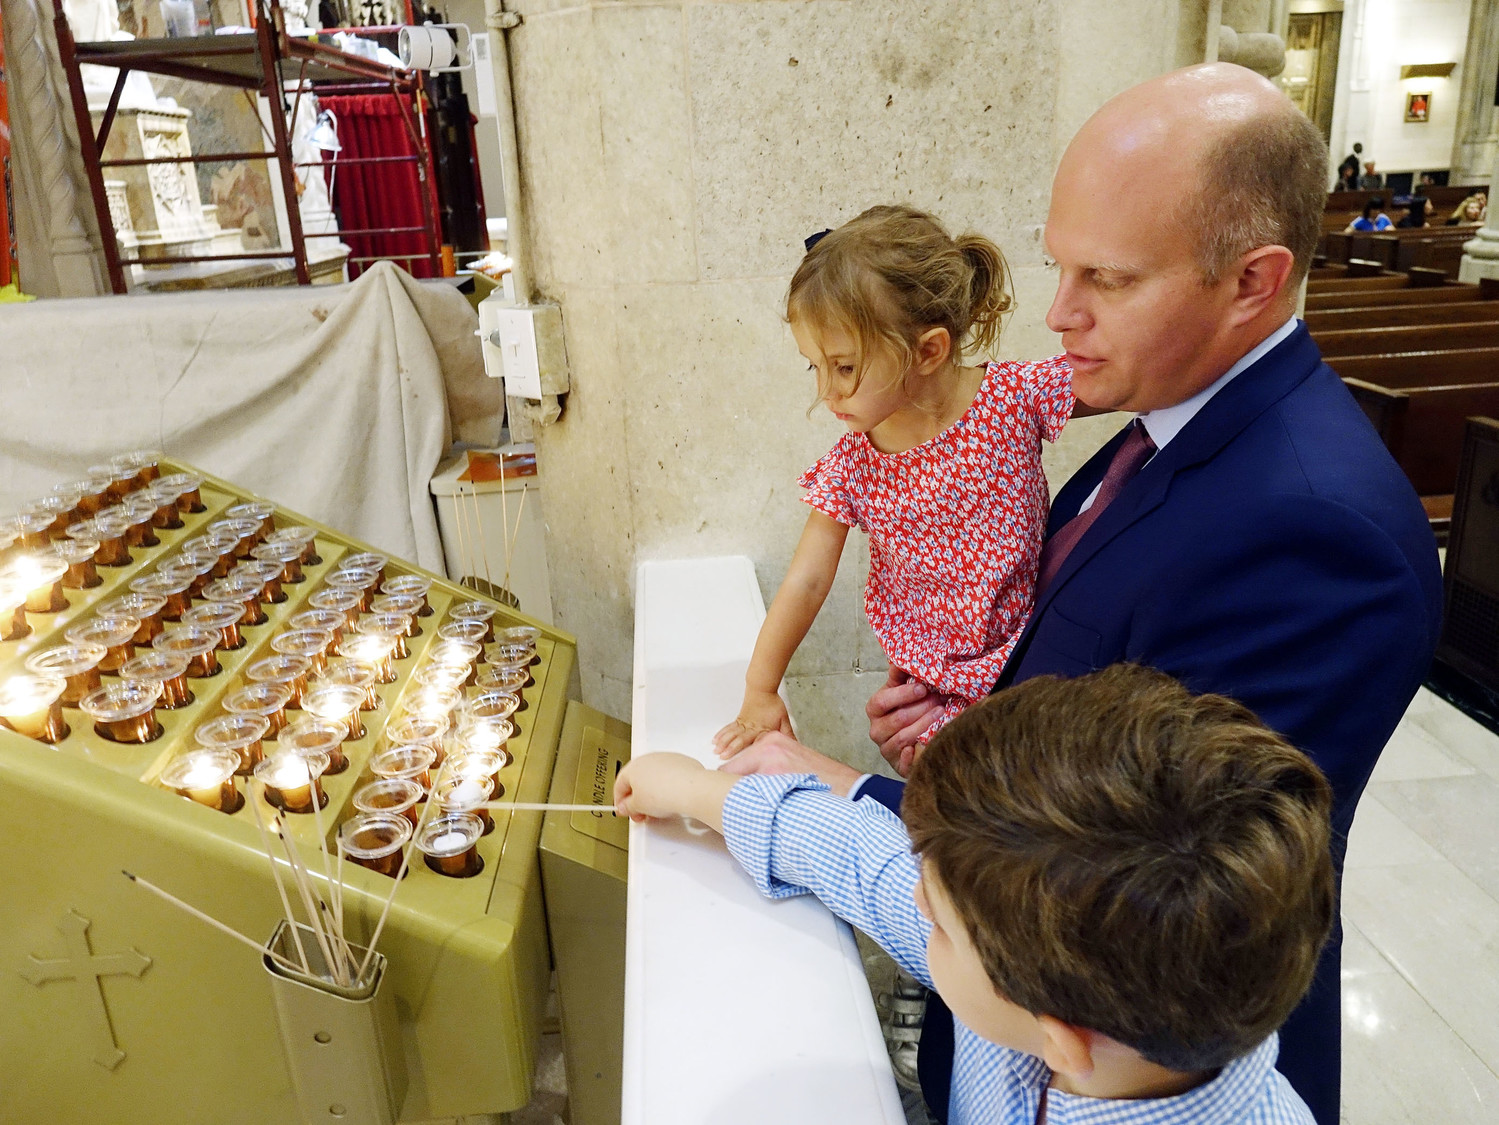 A curious Lillie Seton Lamb, 3, a descendent of Mother Seton, watches as her brother George lights a candle at the altar under the guidance of their father, Seamus Lamb.